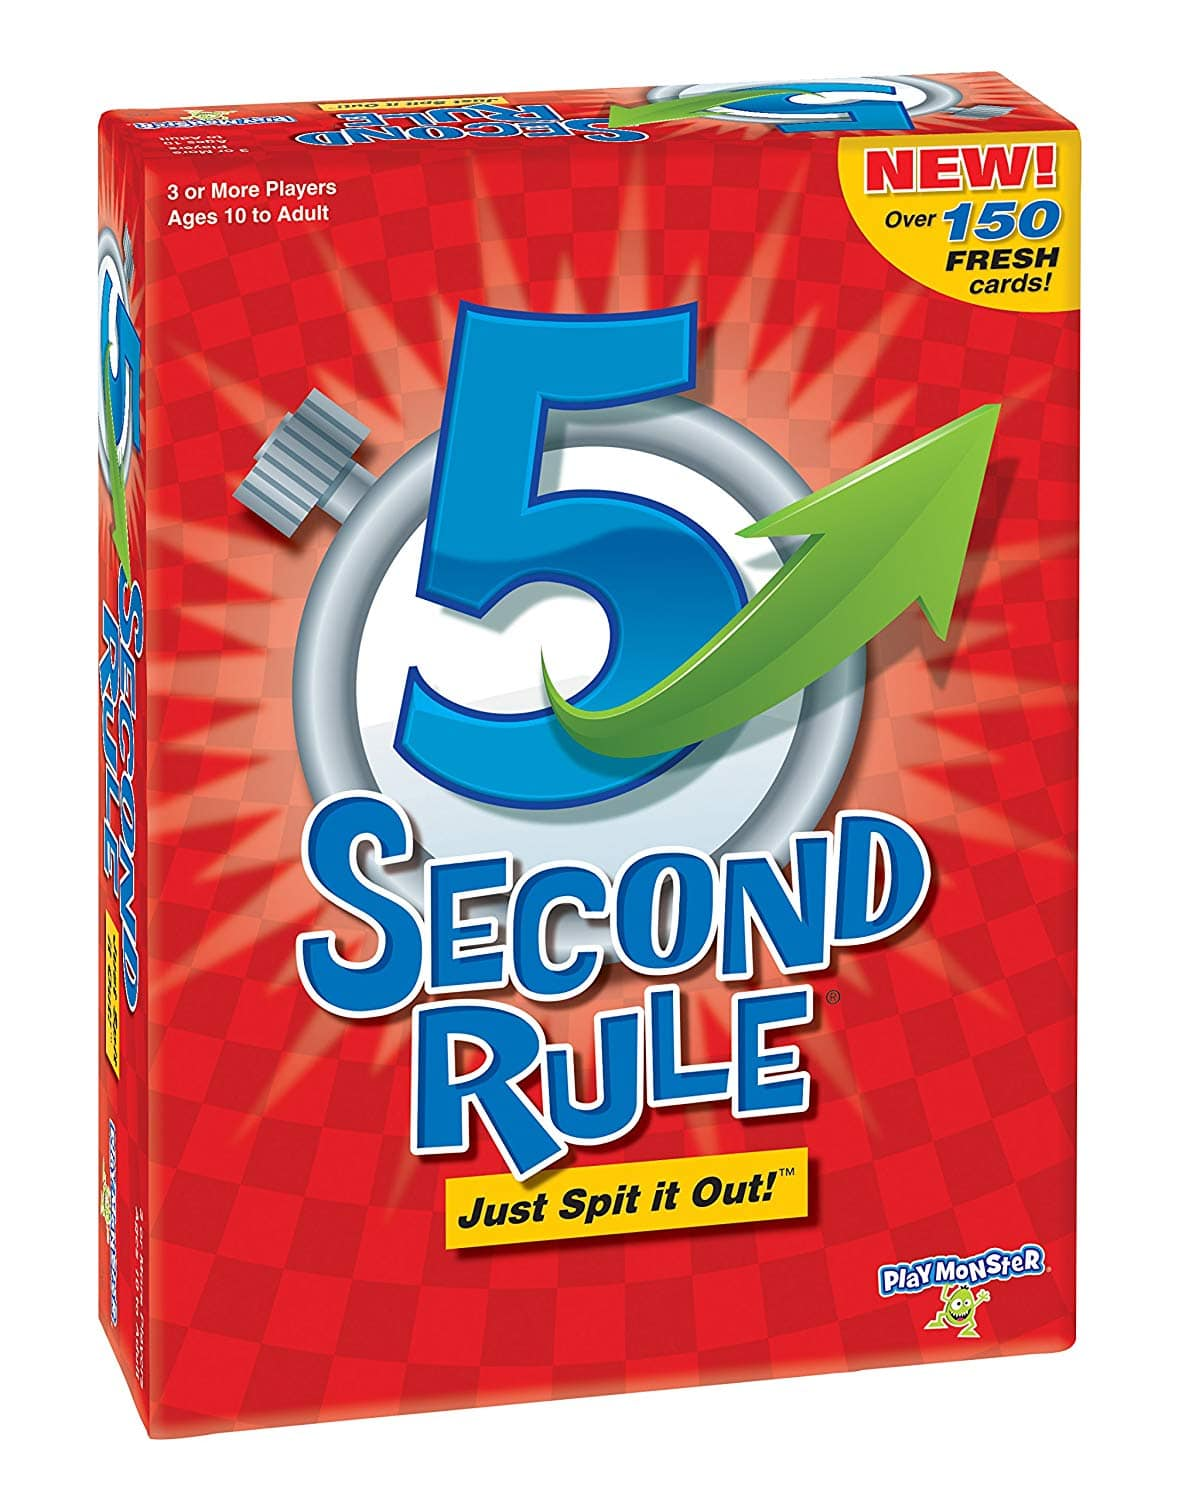 PlayMonster 5 Second Rule Game - New Edition $7.99, Uncensored $9.79 FS w/ Prime